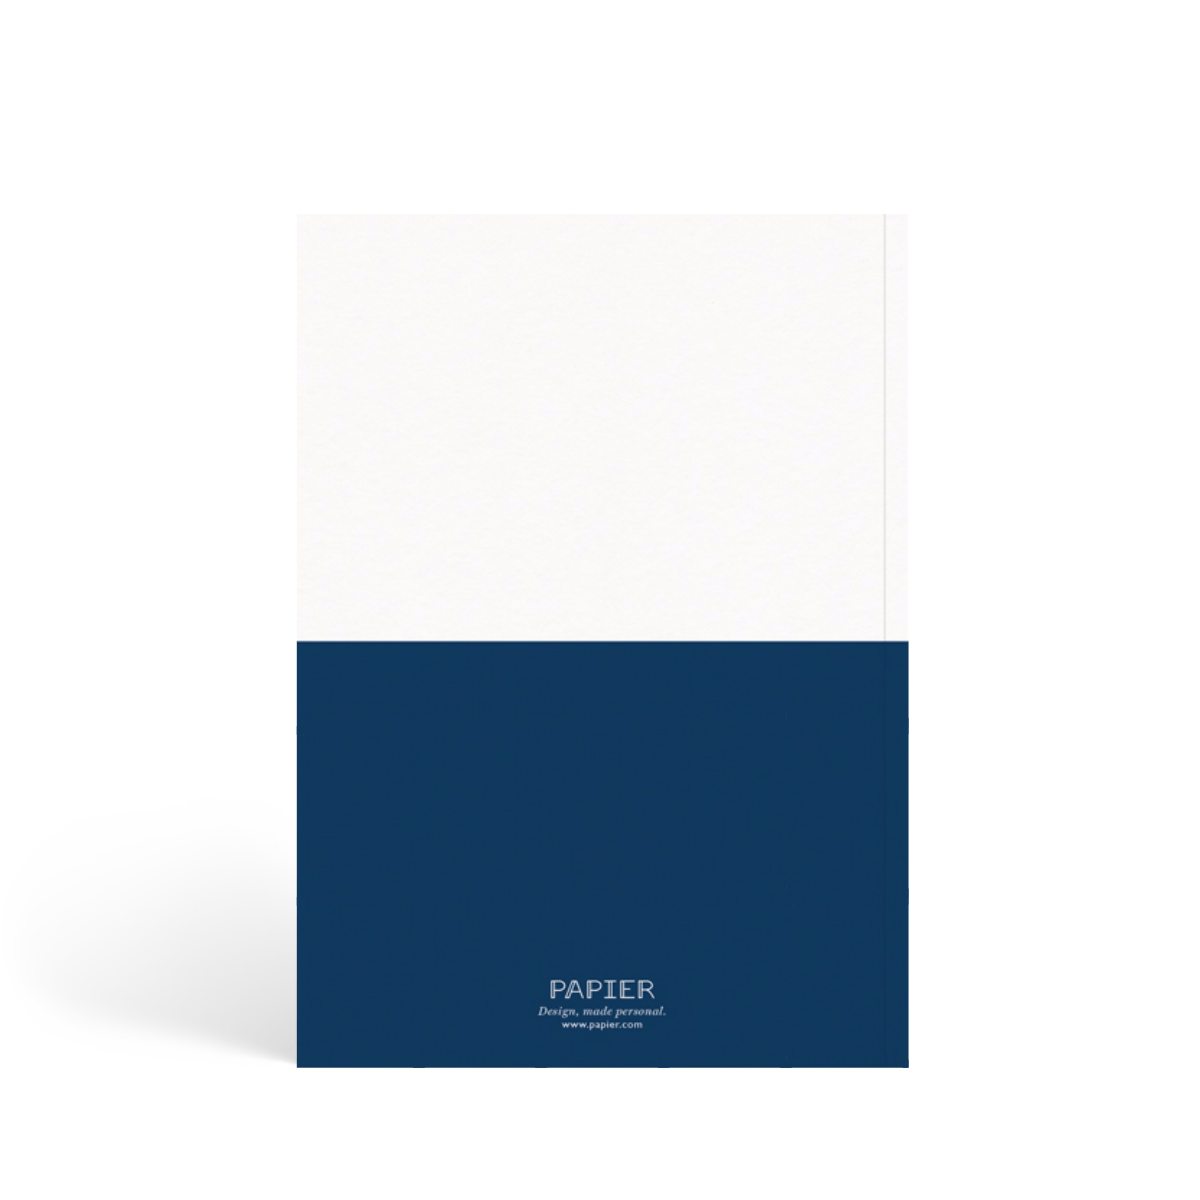 Https%3a%2f%2fwww.papier.com%2fproduct image%2f29848%2f5%2fdemi navy 7526 back 1508770013.png?ixlib=rb 1.1